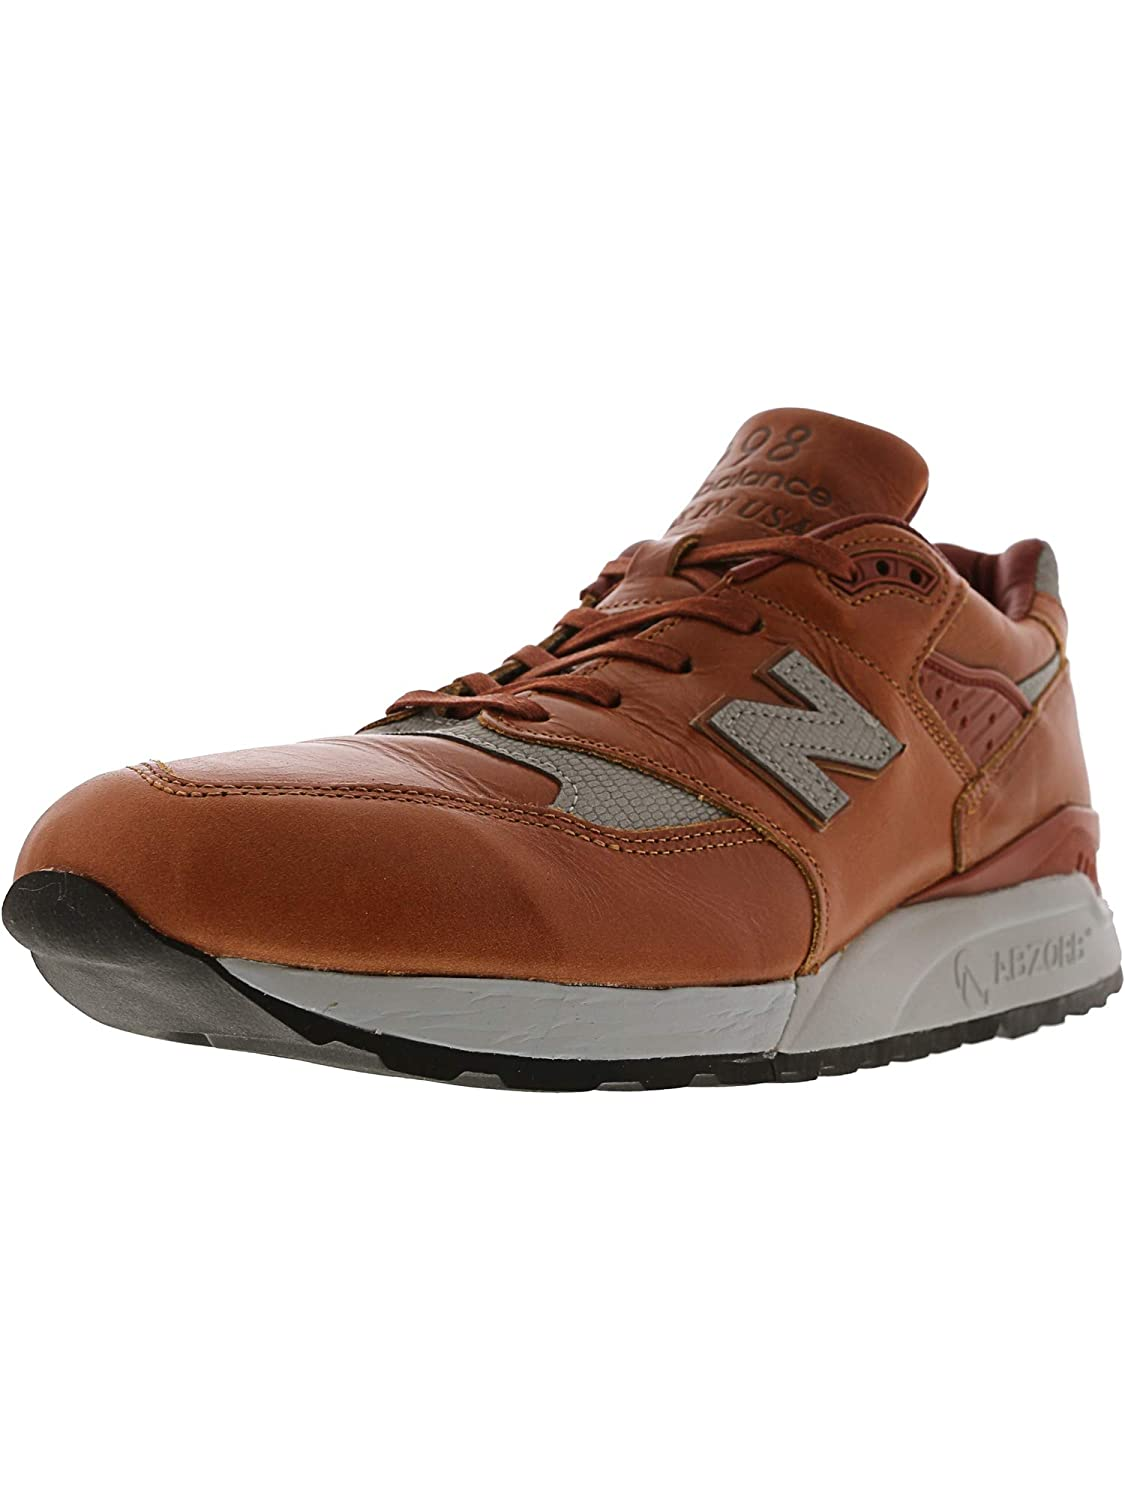 the best attitude 30c10 efe9d Amazon.com | New Balance 998 Made in USA Real Leather ...